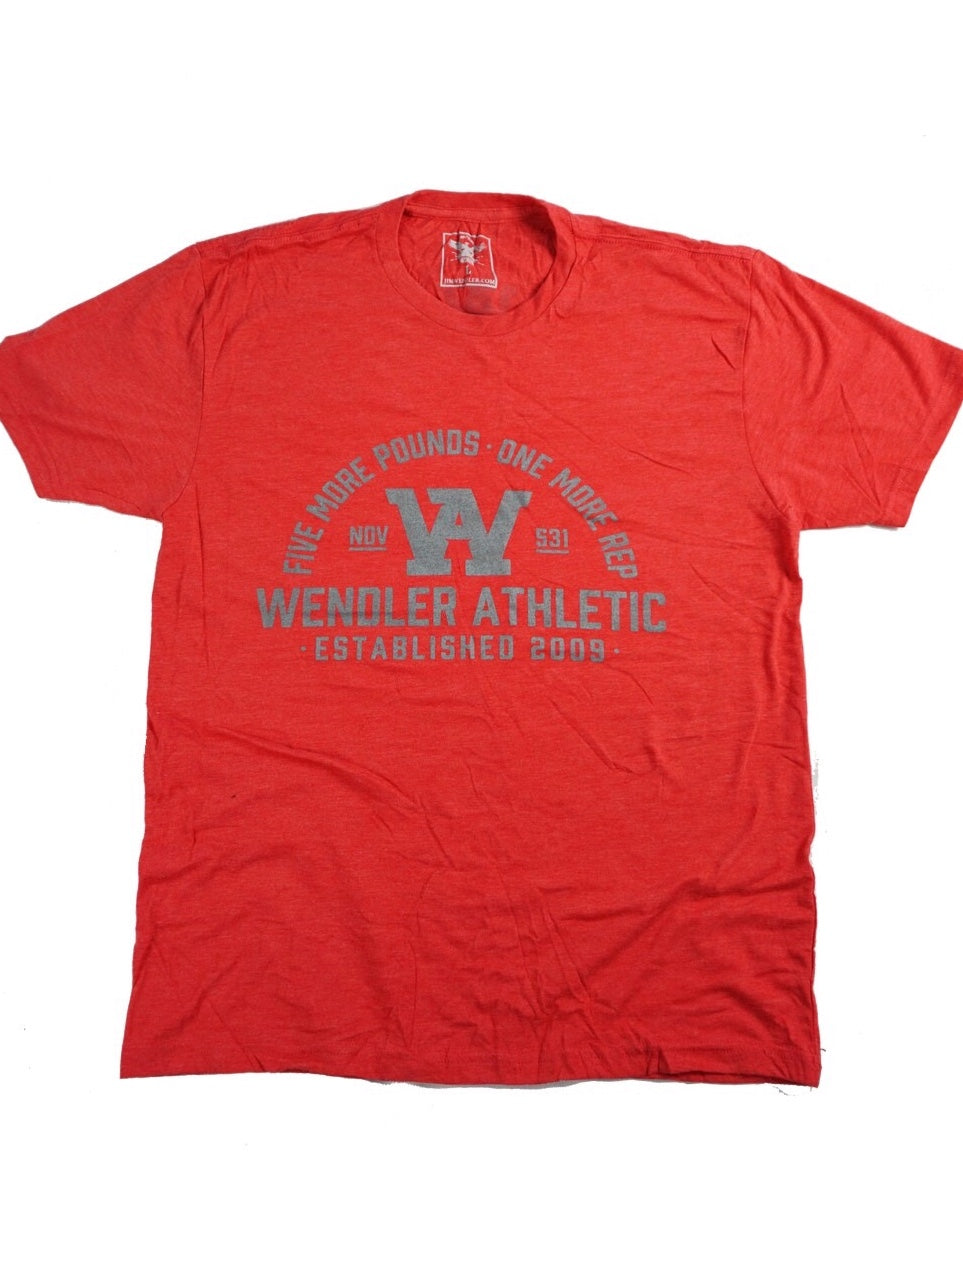 1 More Rep - Red Shirt